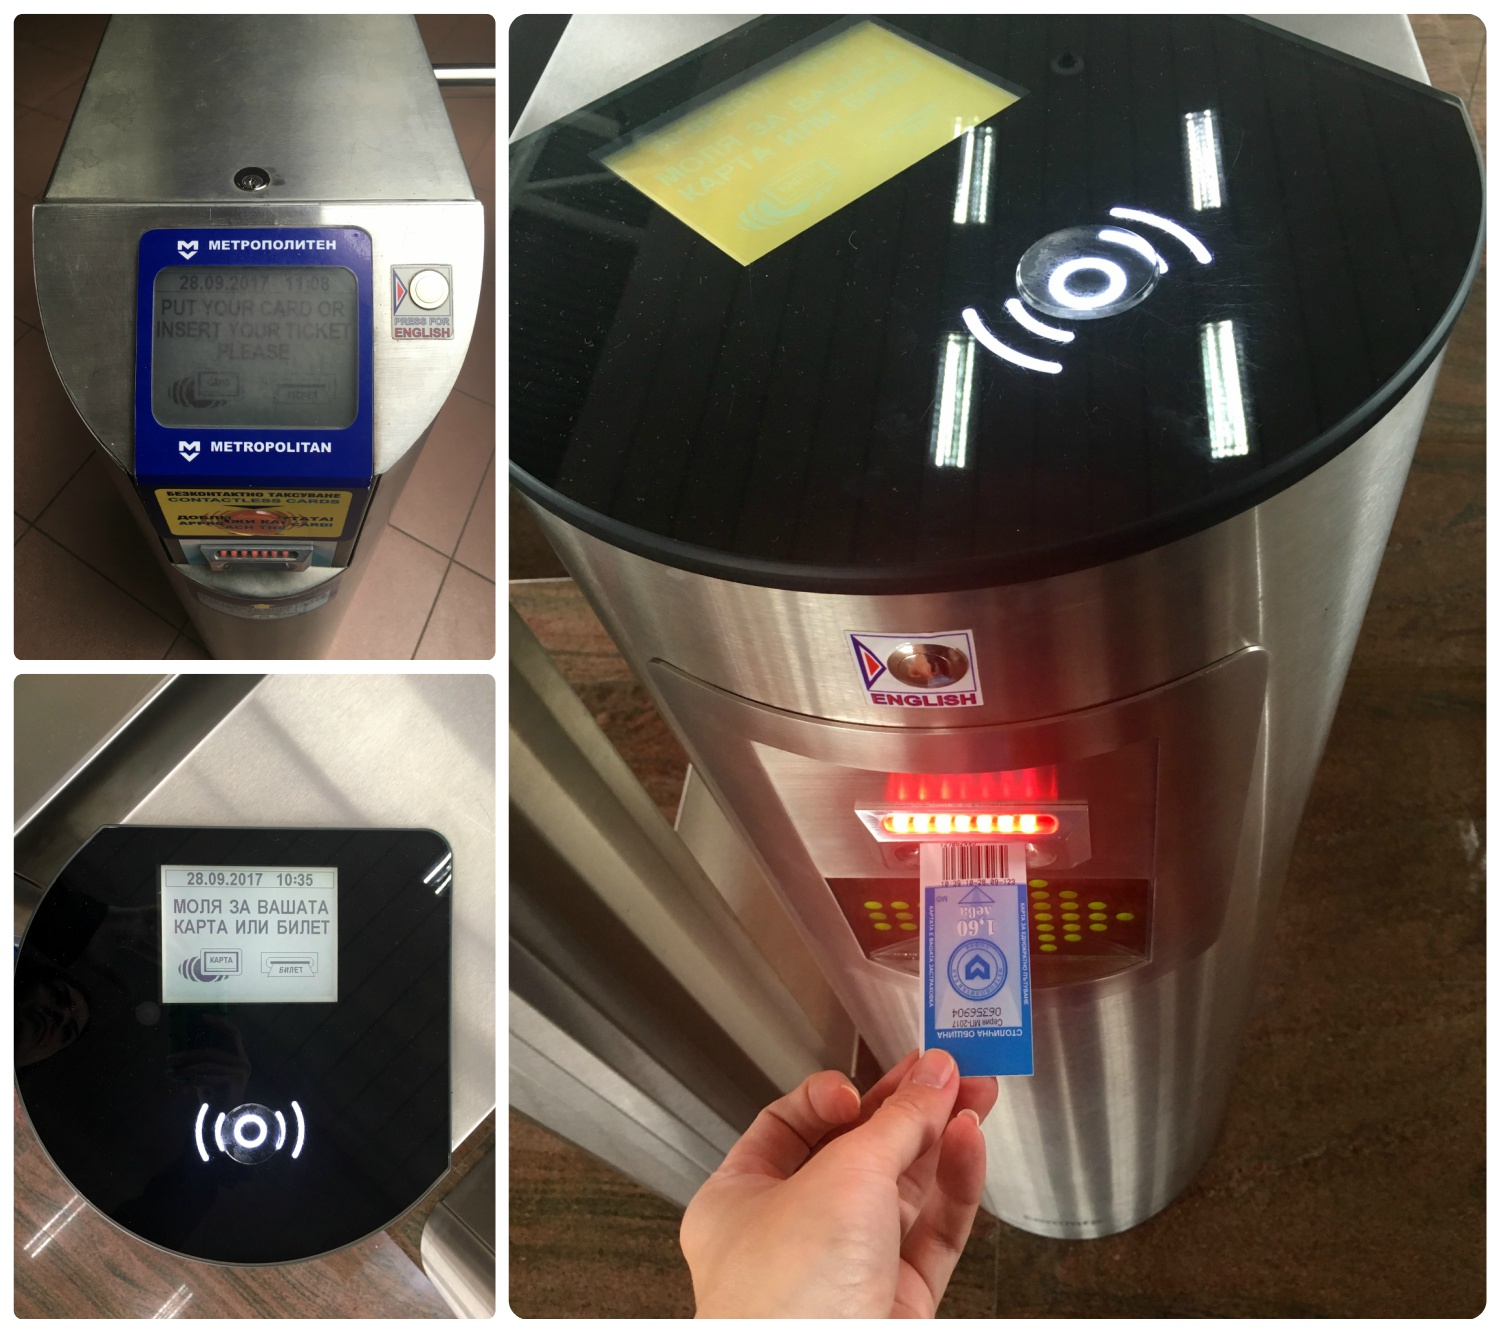 """Sofia, Bulgaria: Depending on the station, the ticket validation machines may vary in the way they look. However, the general function is the same. Insert your ticket into the slot to pass through the turnstile. Also, press the button labeled """"English"""" to display the digital screen that shows ticket information in English."""